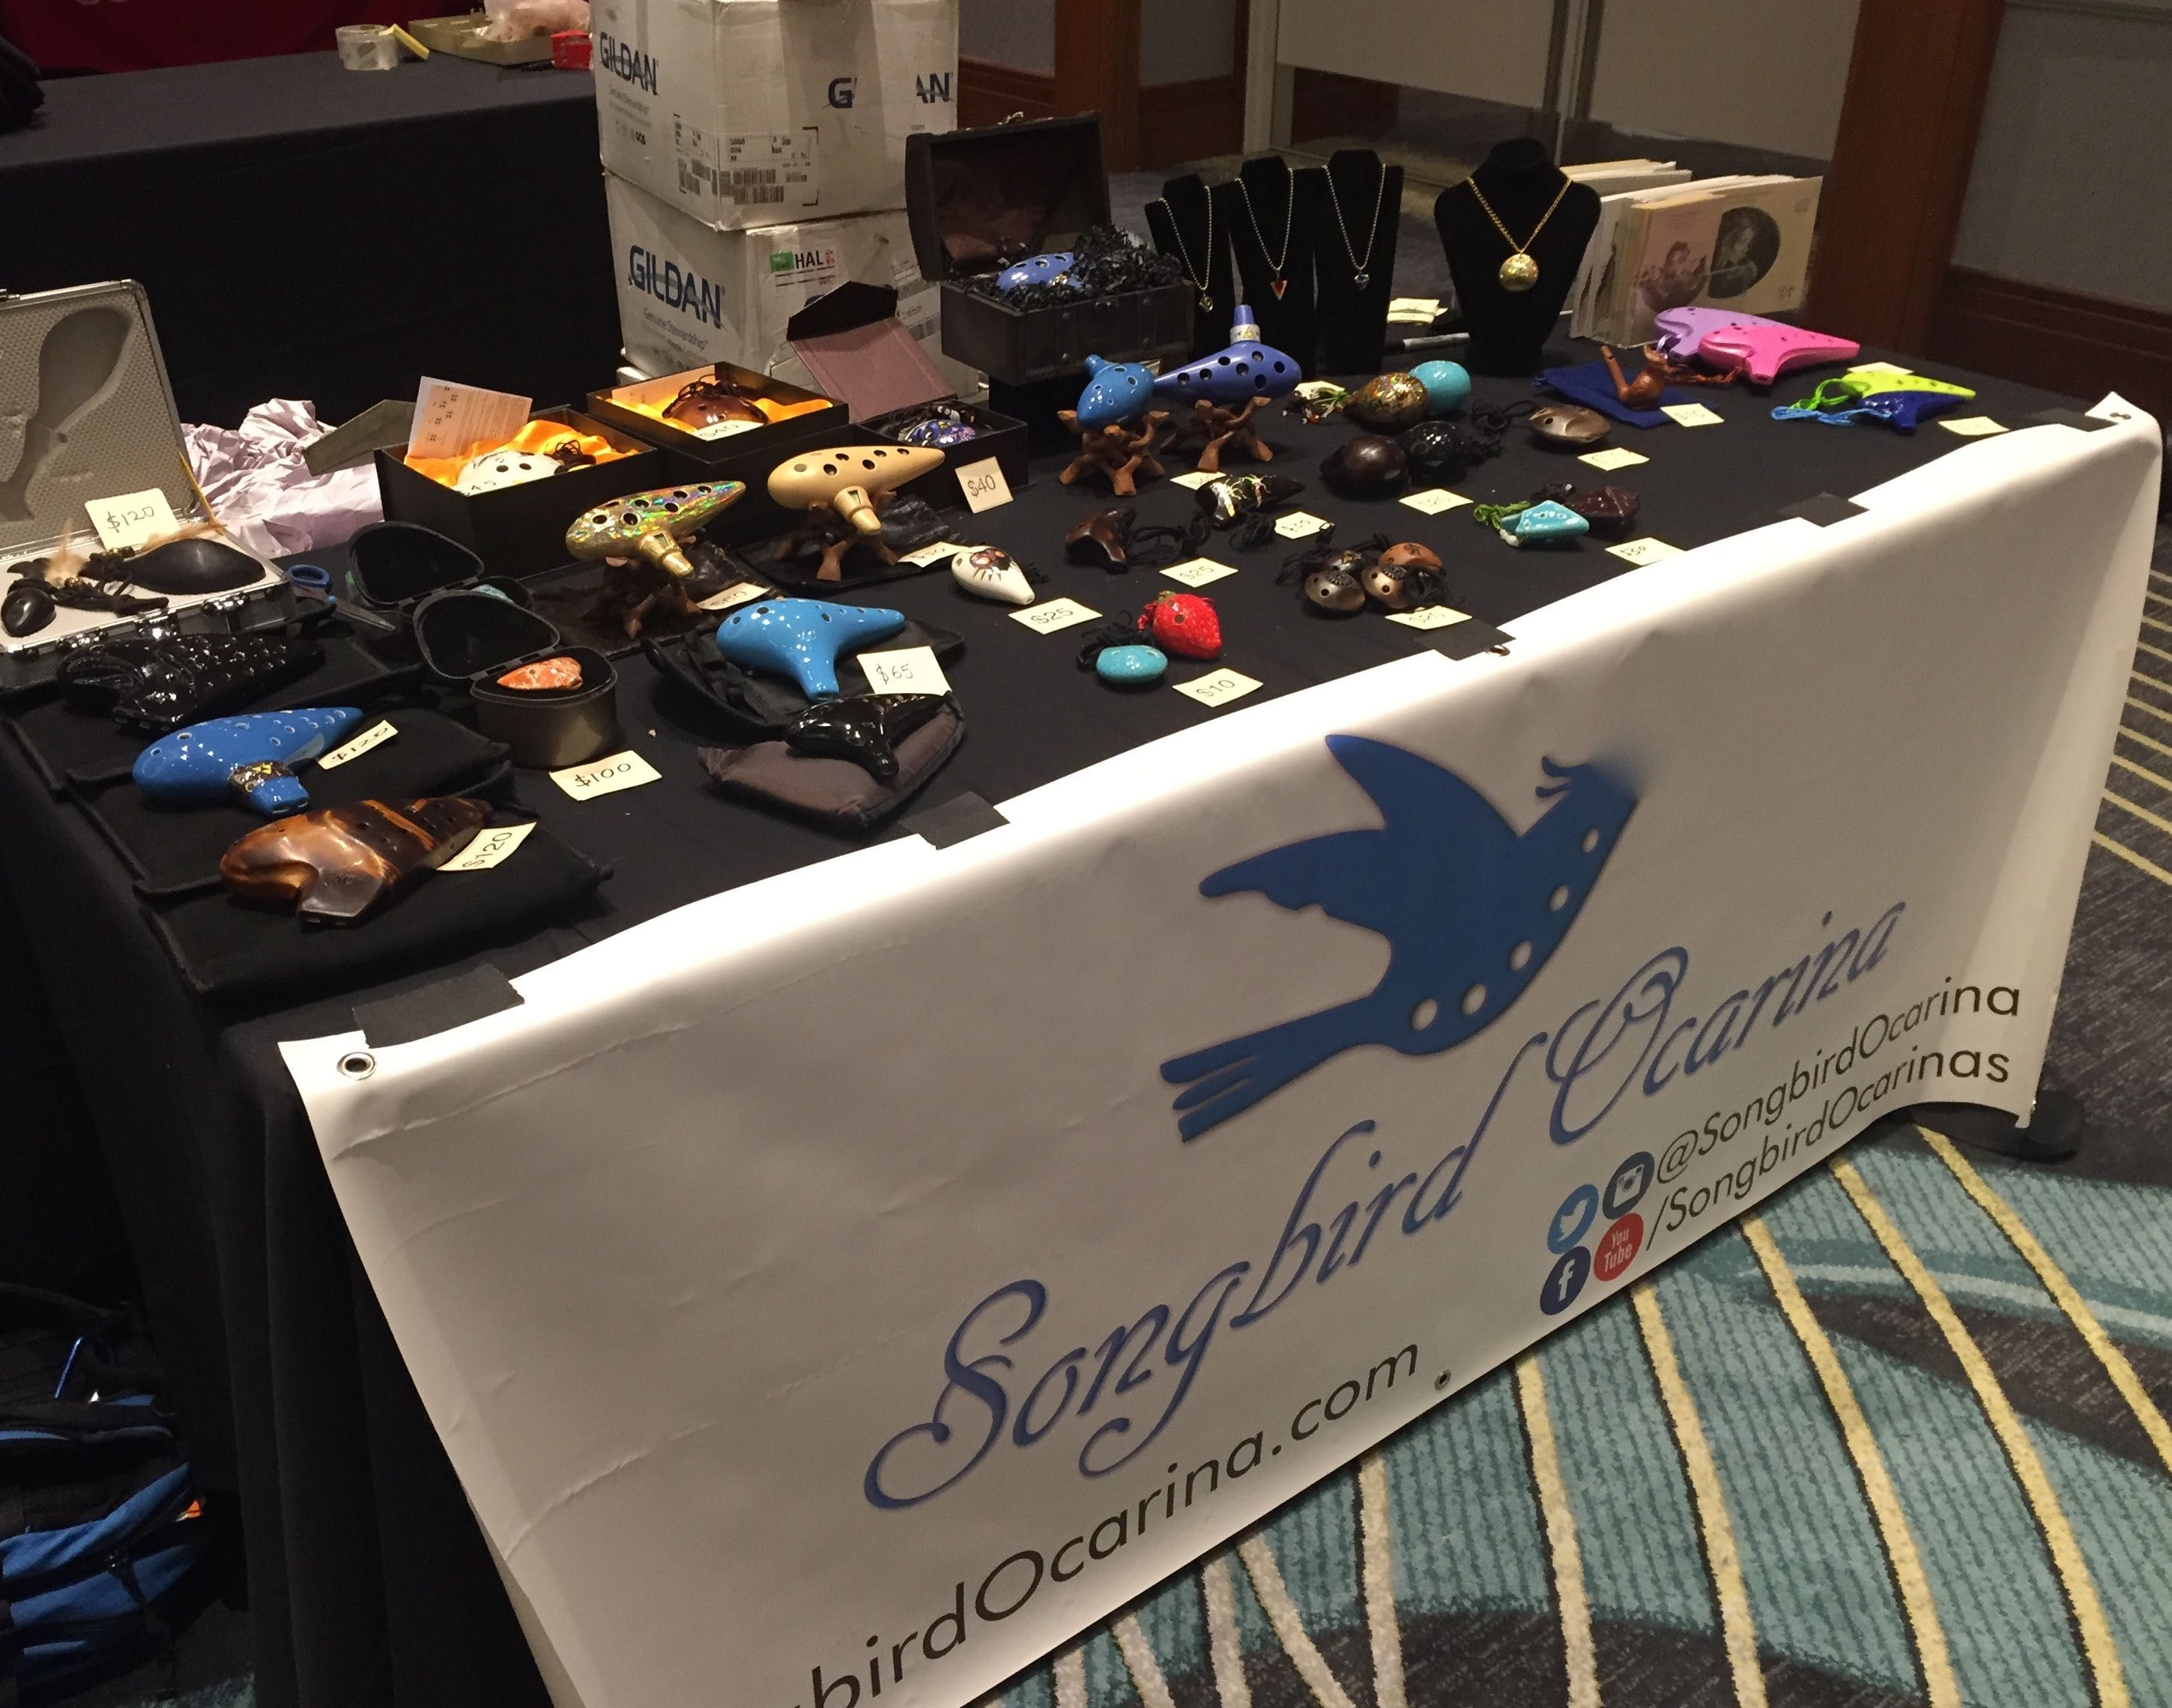 We're all set up at the Midwest Media Expo, so come by and meet @Docjazz4 and jam with your new ocarina!